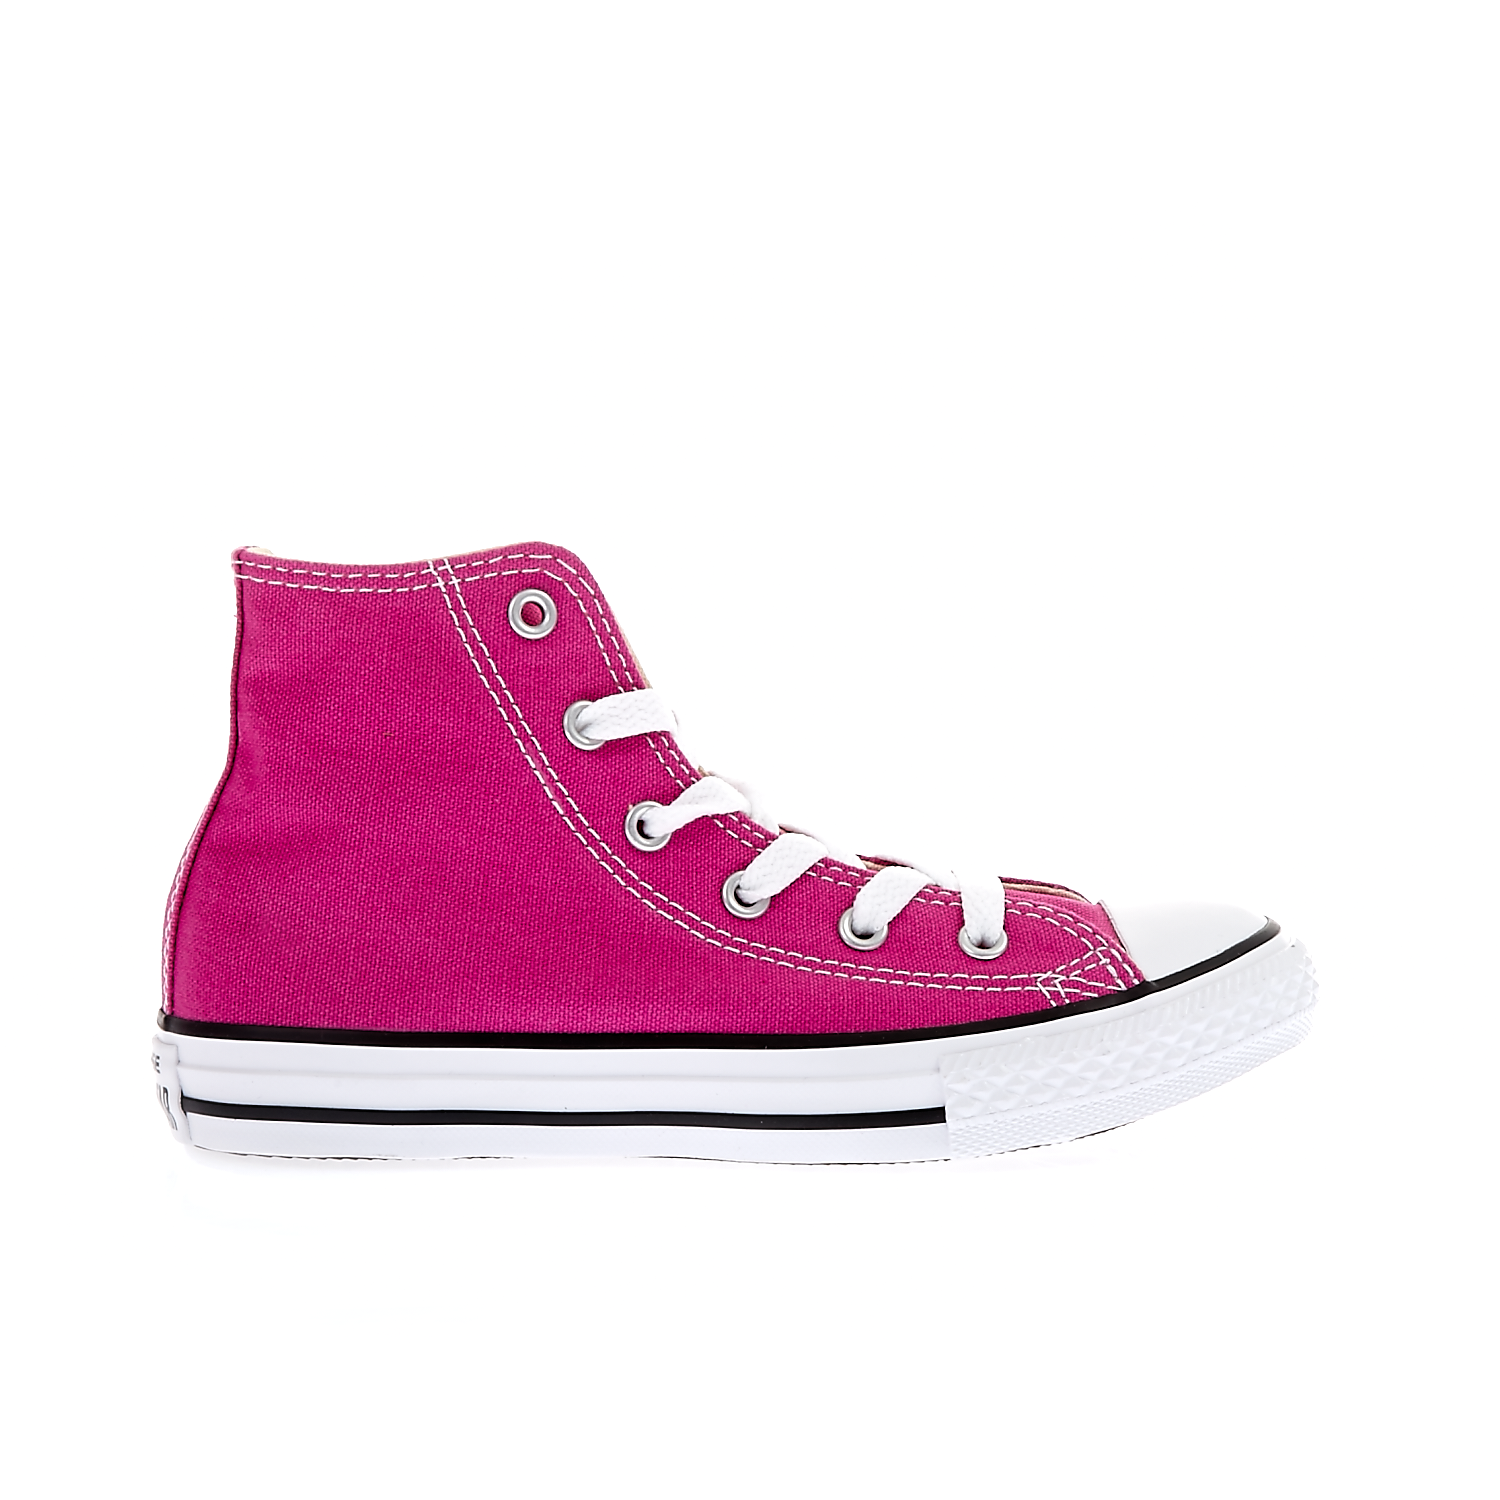 CONVERSE - Παιδικά παπούτσια Chuck Taylor All Star Hi φούξια παιδικά boys παπούτσια sneakers